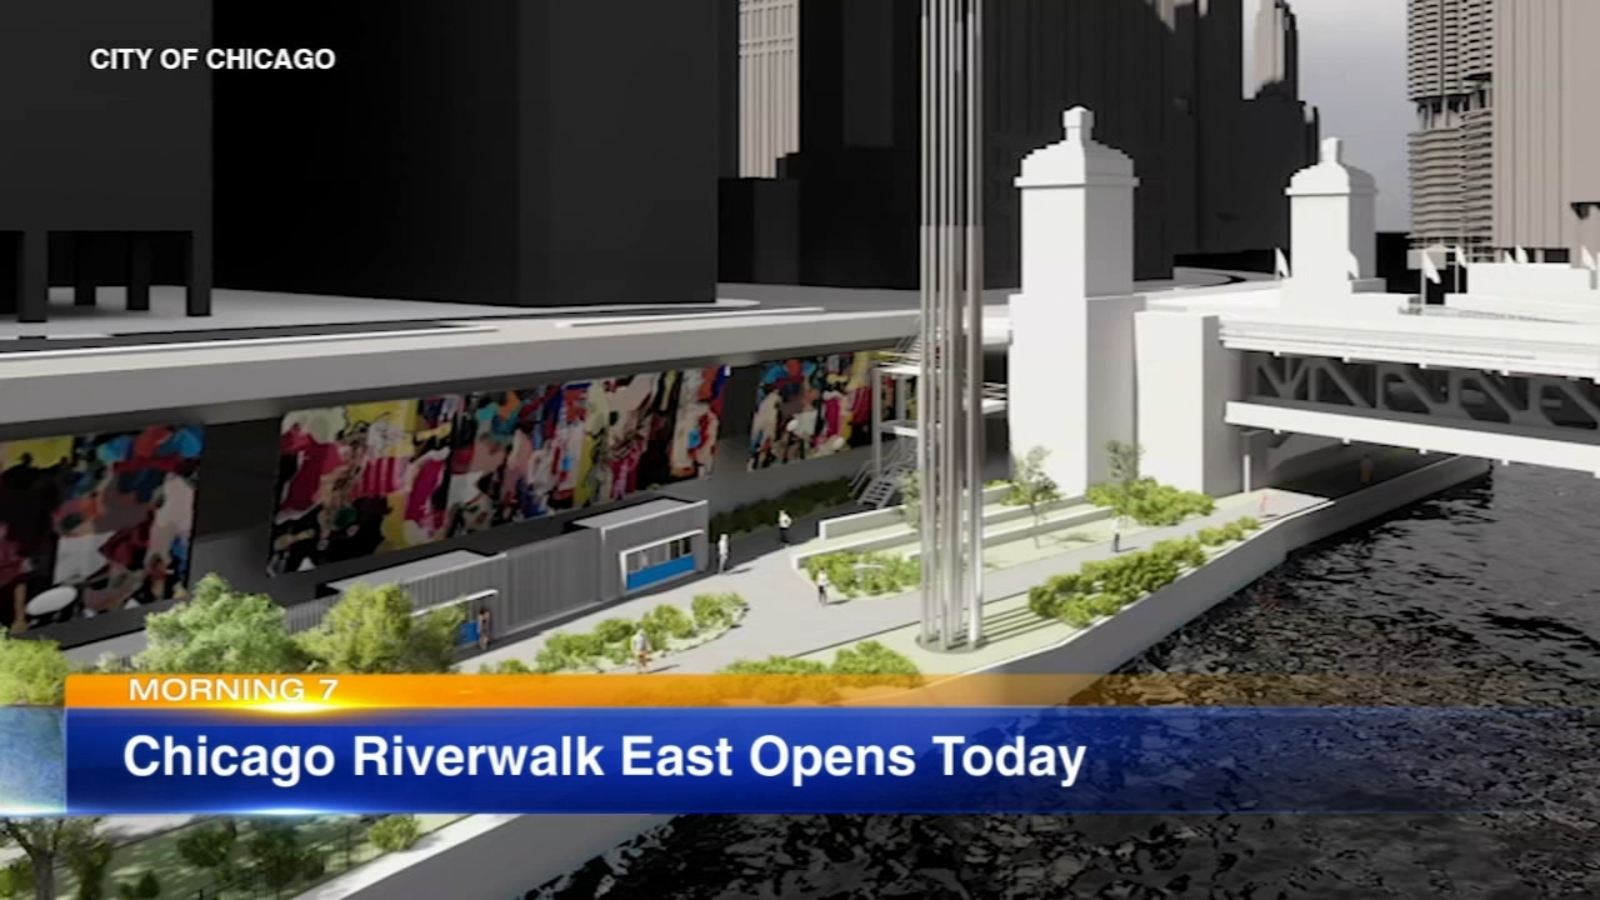 Newly transformed Chicago Riverwalk East to open Monday